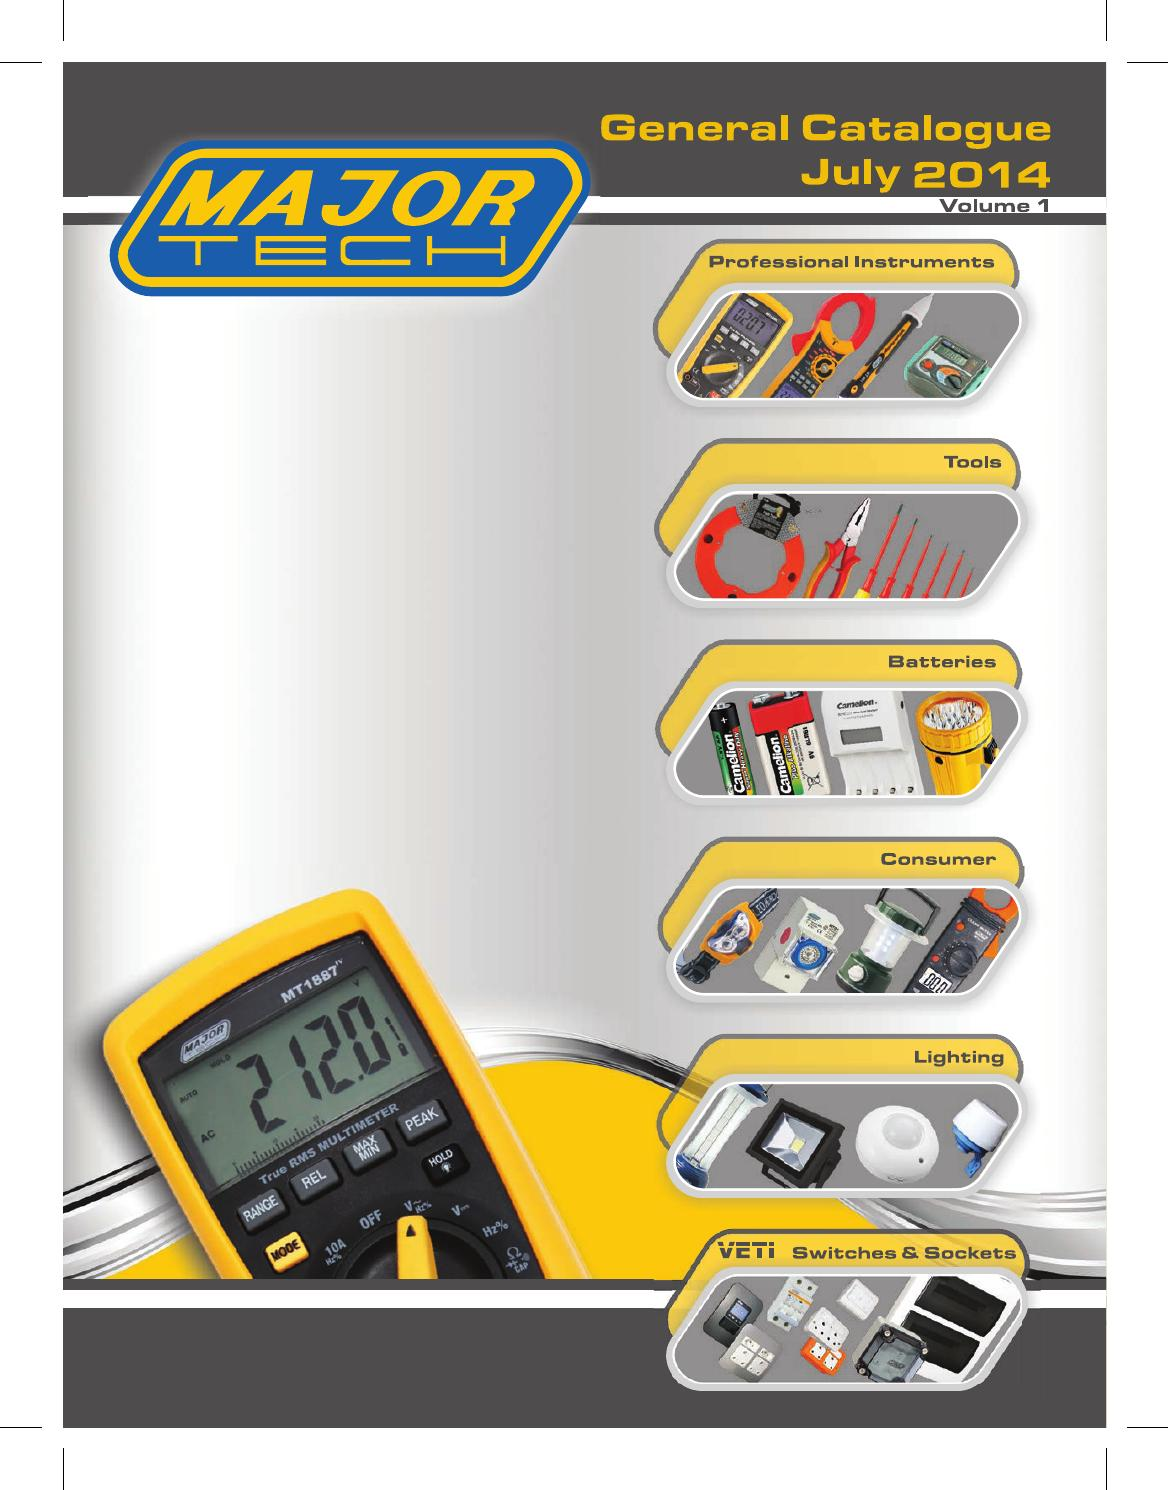 Majortech Veti Product Catalogue 2014 By Alf Allingham Issuu Double Poles 2p Elcb Earth Leakage Circuit Breaker Diy Electricals